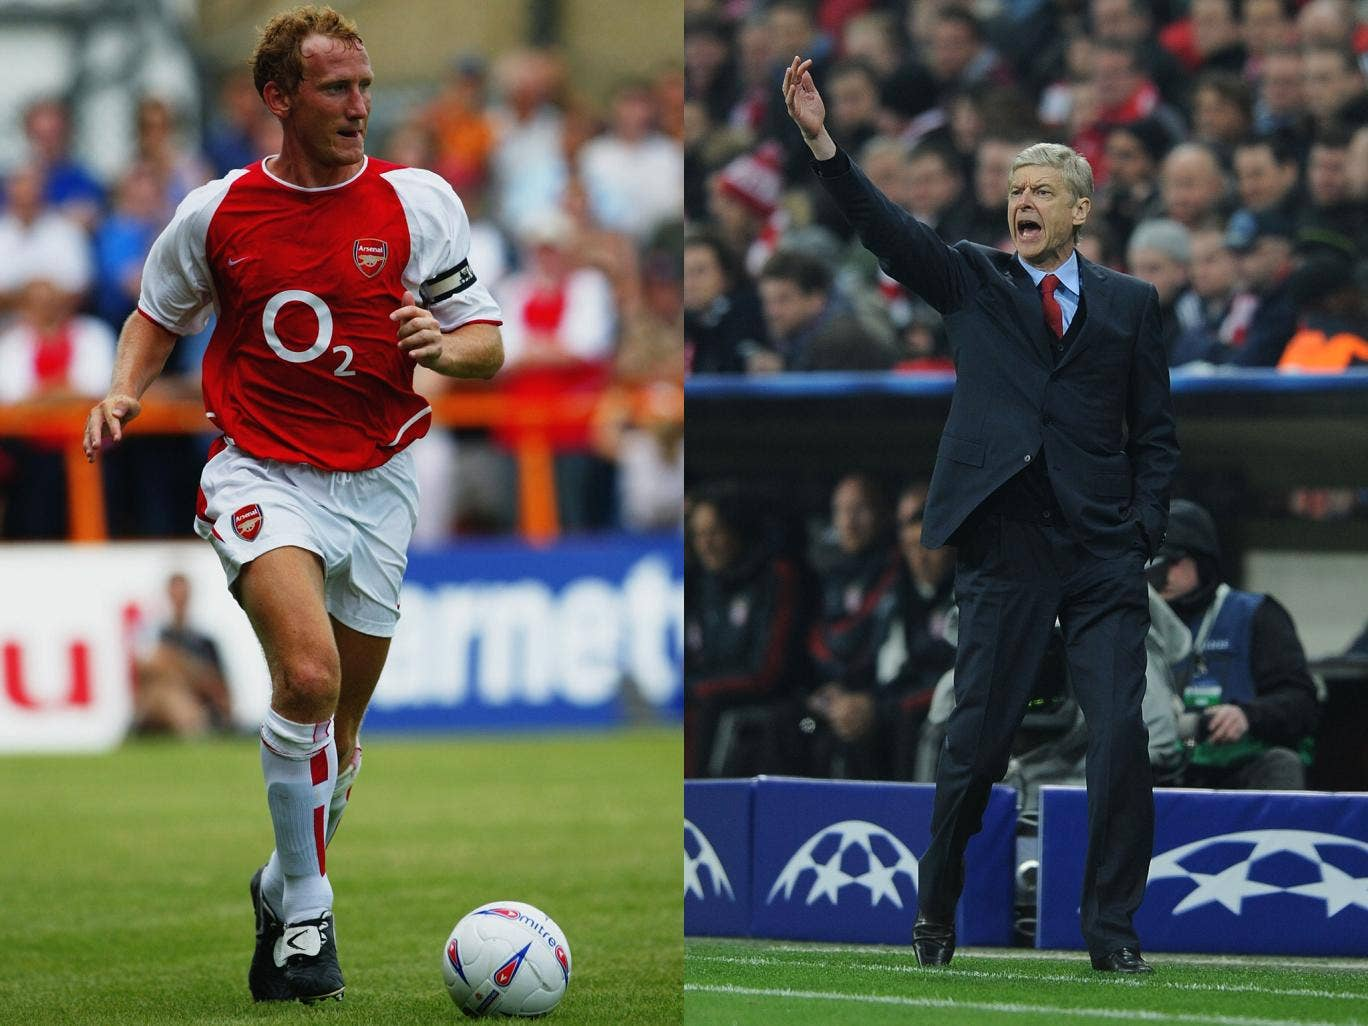 Ray Parlour has praised Arsenal manager Arsene Wenger for taking his game on to another level